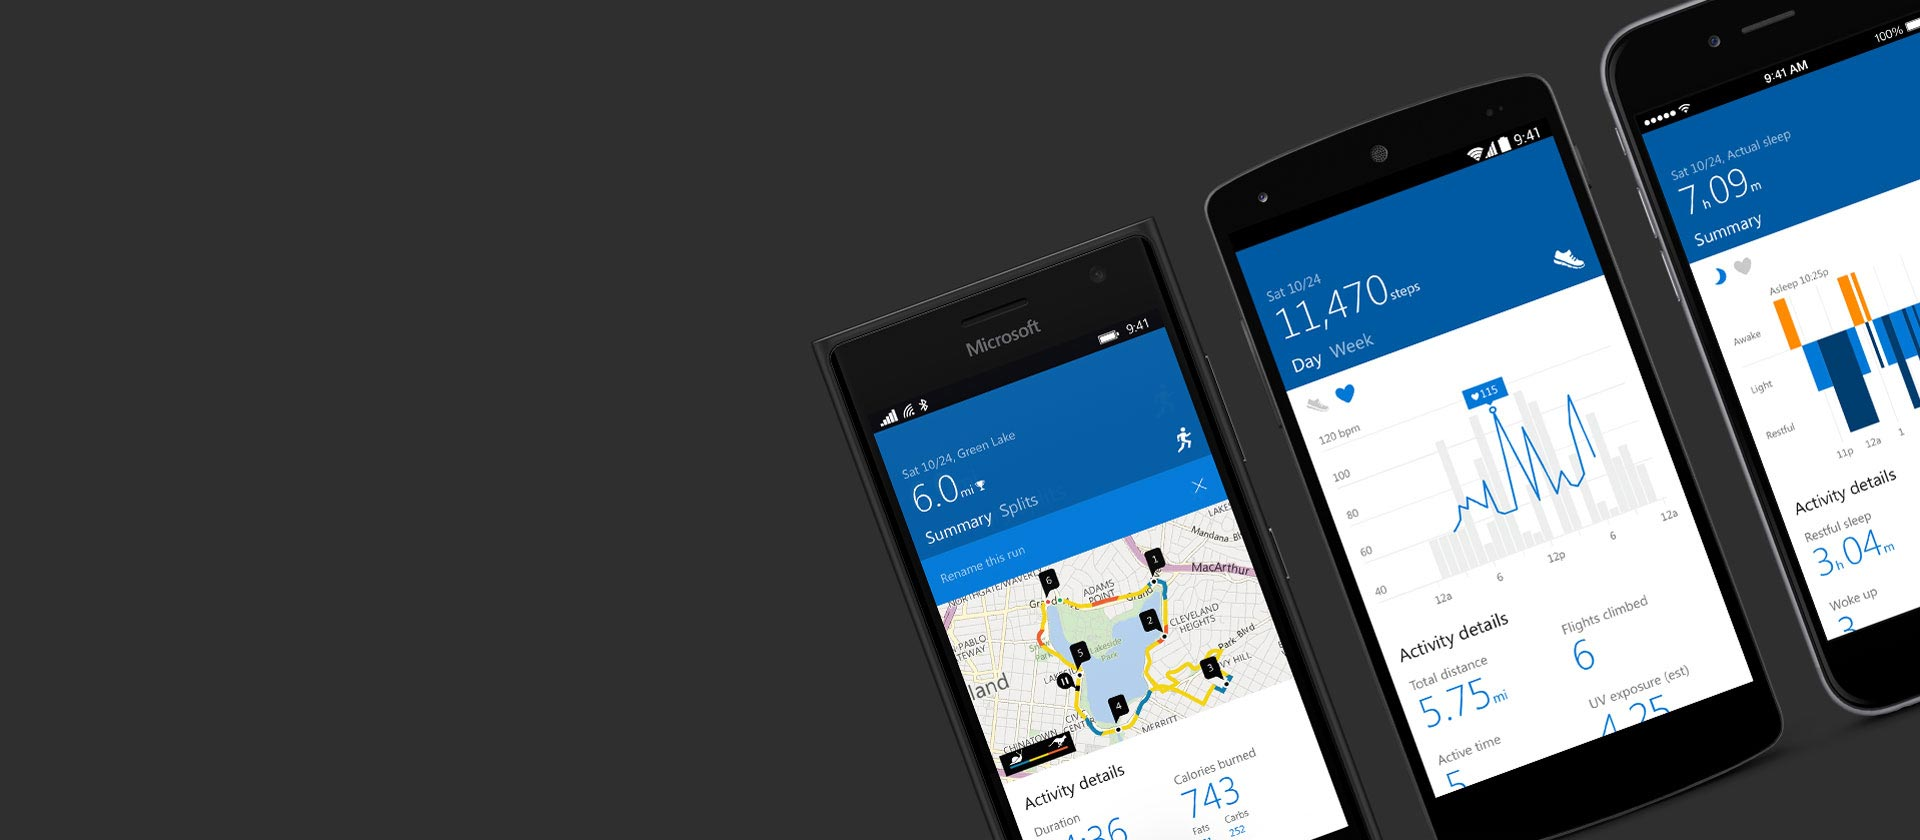 Microsoft Health app on a range of mobile phones